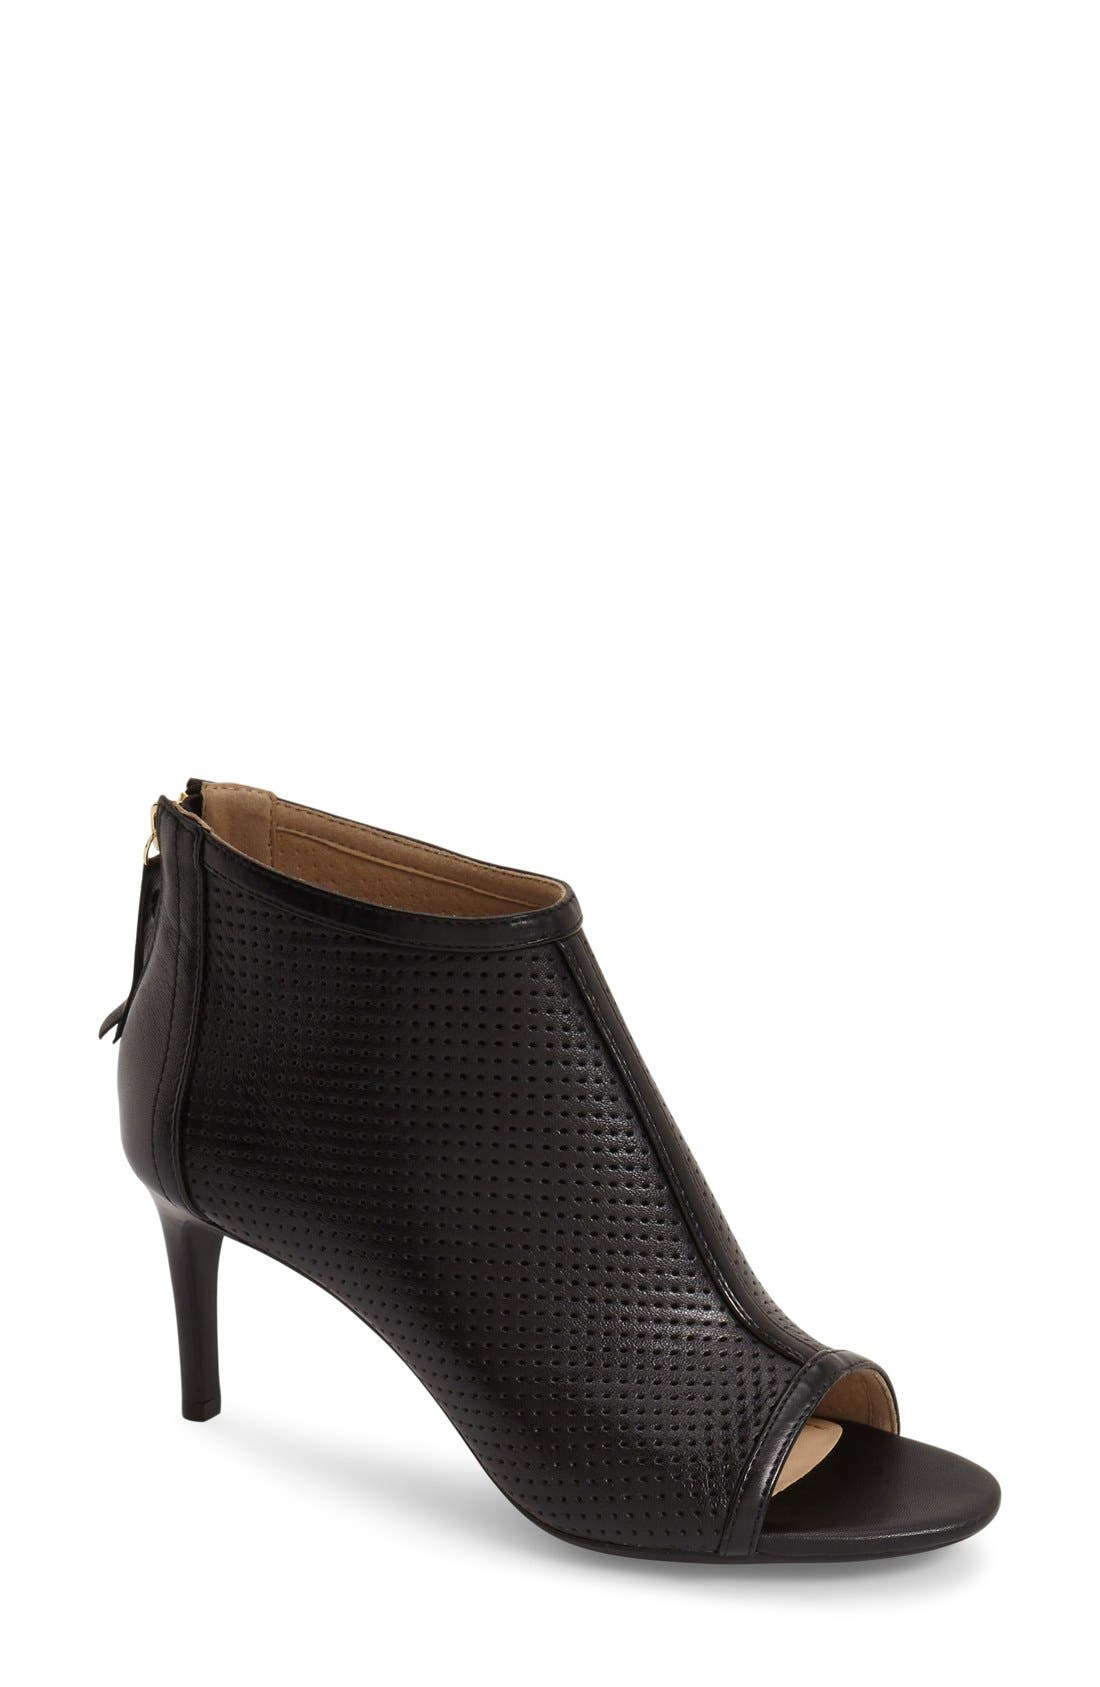 Main Image - Geox 'Audie' Peep Toe Bootie (Women)